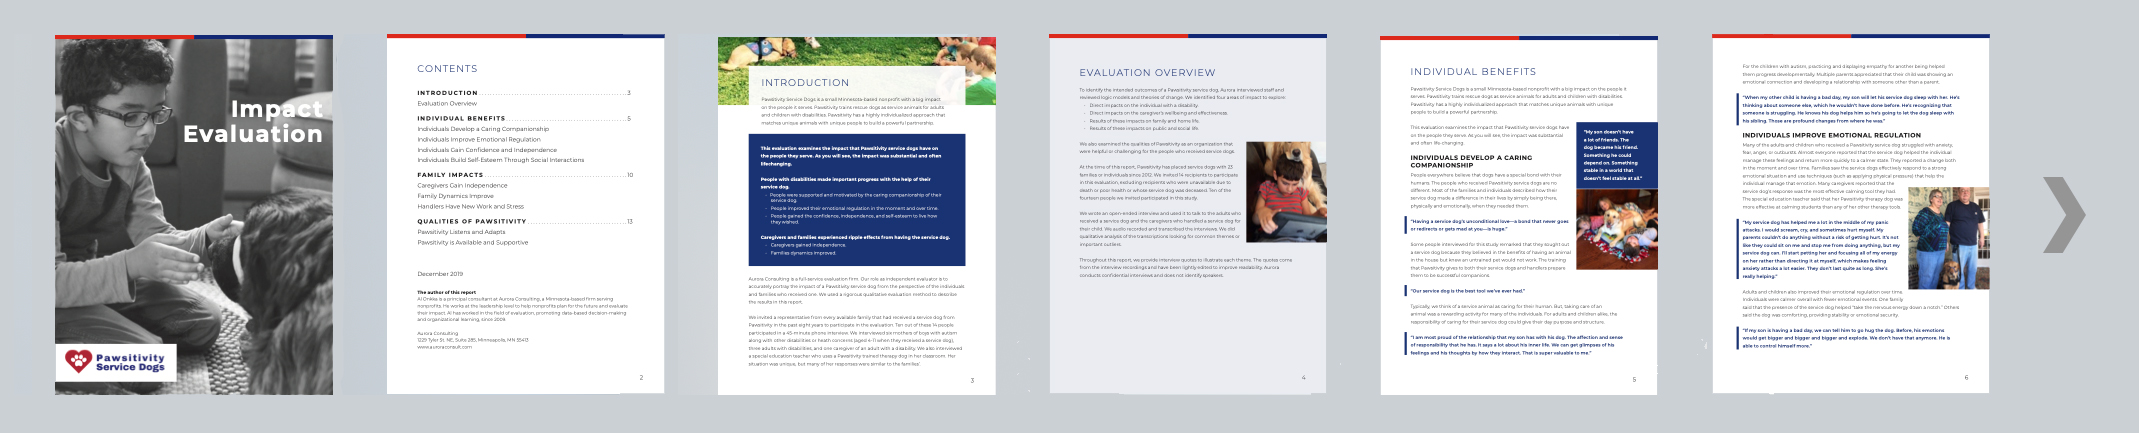 Pages of the Impact Assessment for Pawsitivity Service Dogs